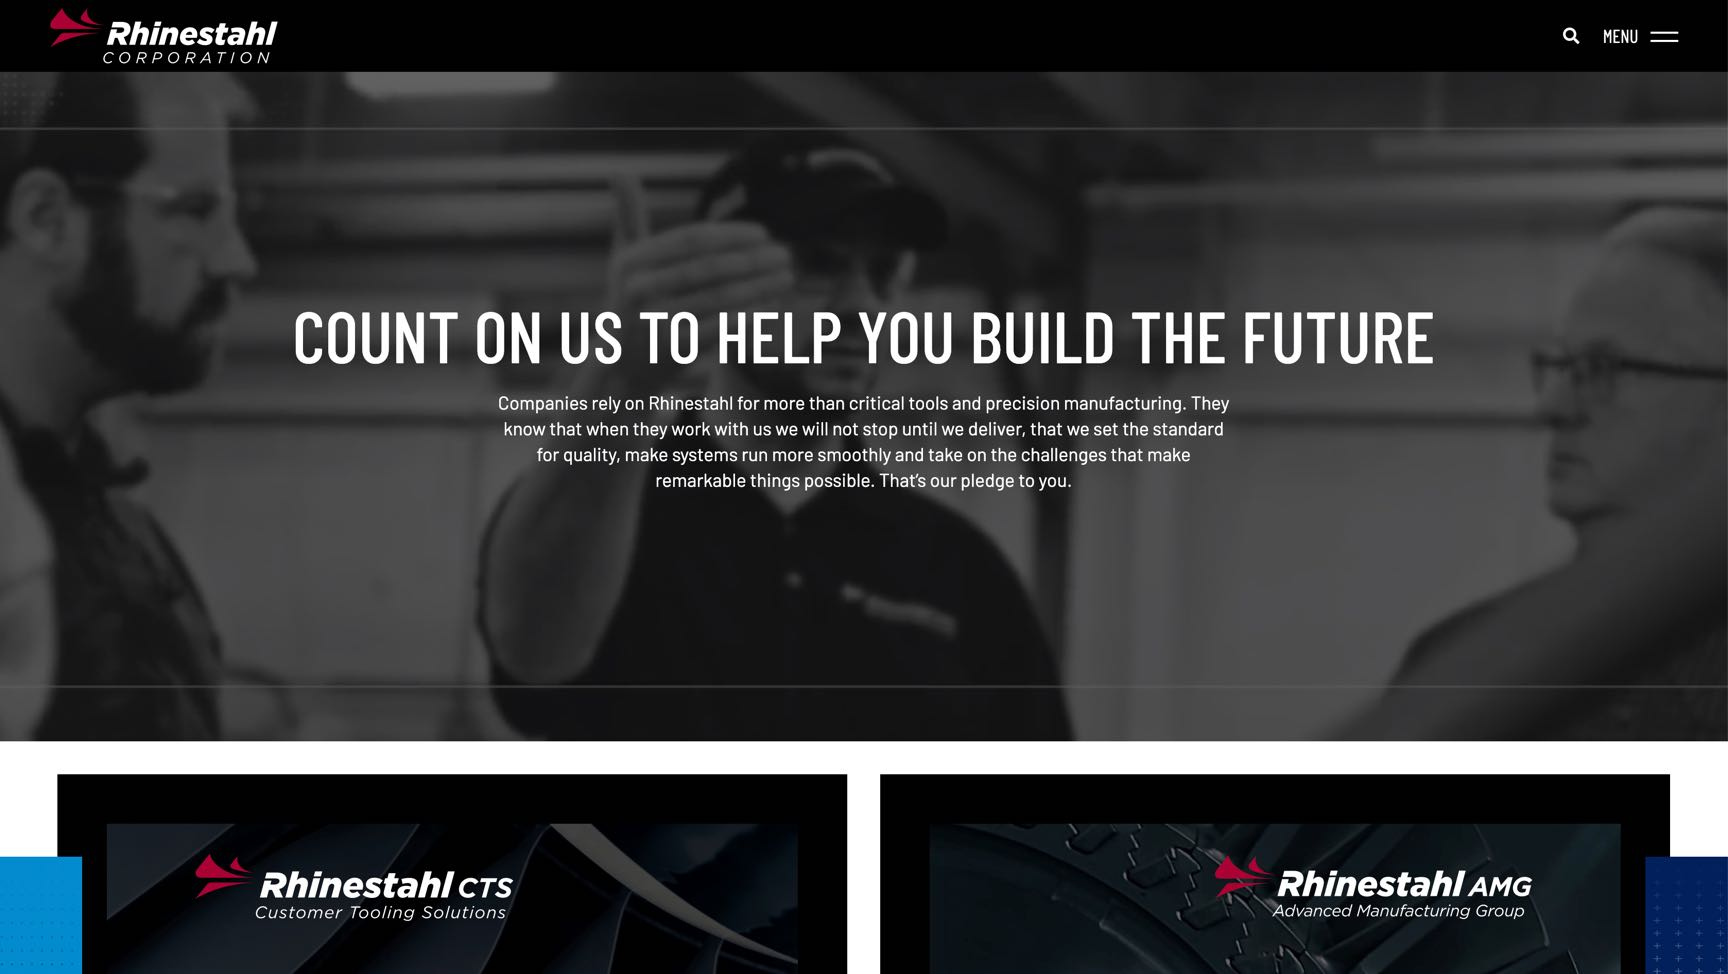 Rhinestahl desktop website